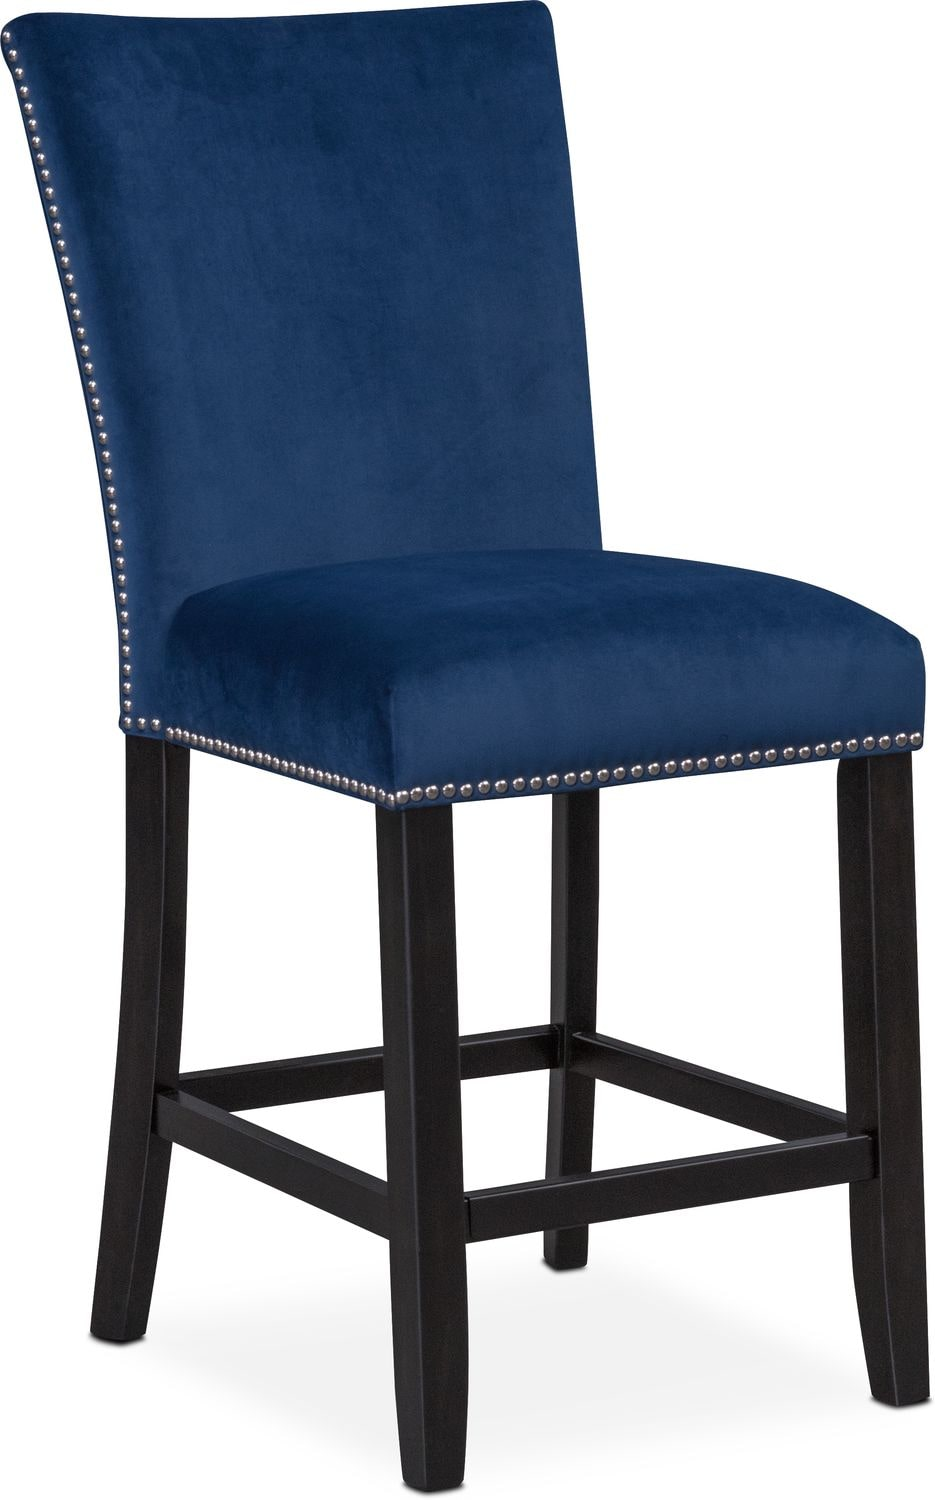 Counter Bar Stools Value City Furniture And Mattresses Rh Valuecityfurniture  Com Value City Furniture TV Stands